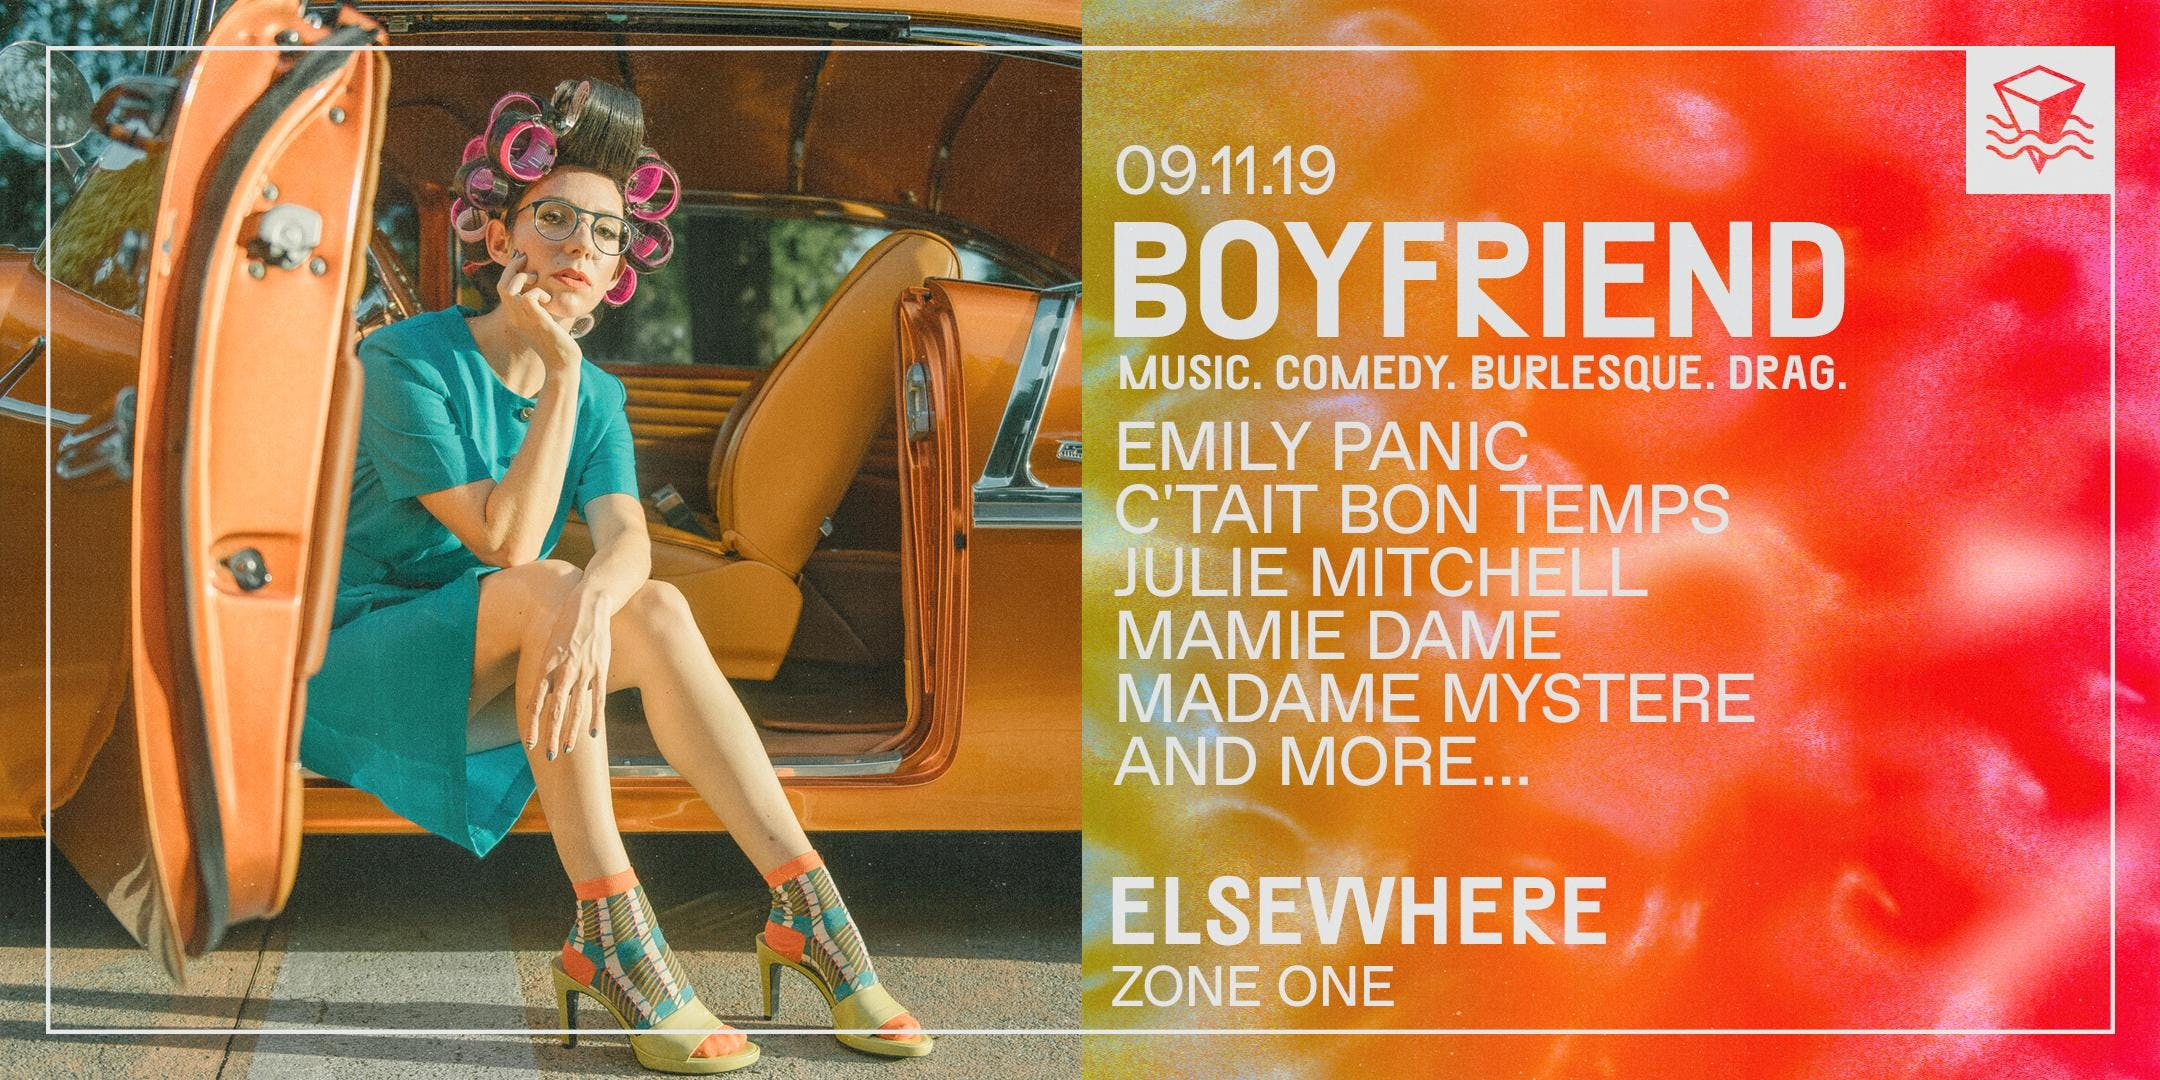 Boyfriend Presents: A Night of Burlesque, Comedy, Drag and Music! Featuring Host Emily Panic, with Performances by C'etait Bon Temps and More!